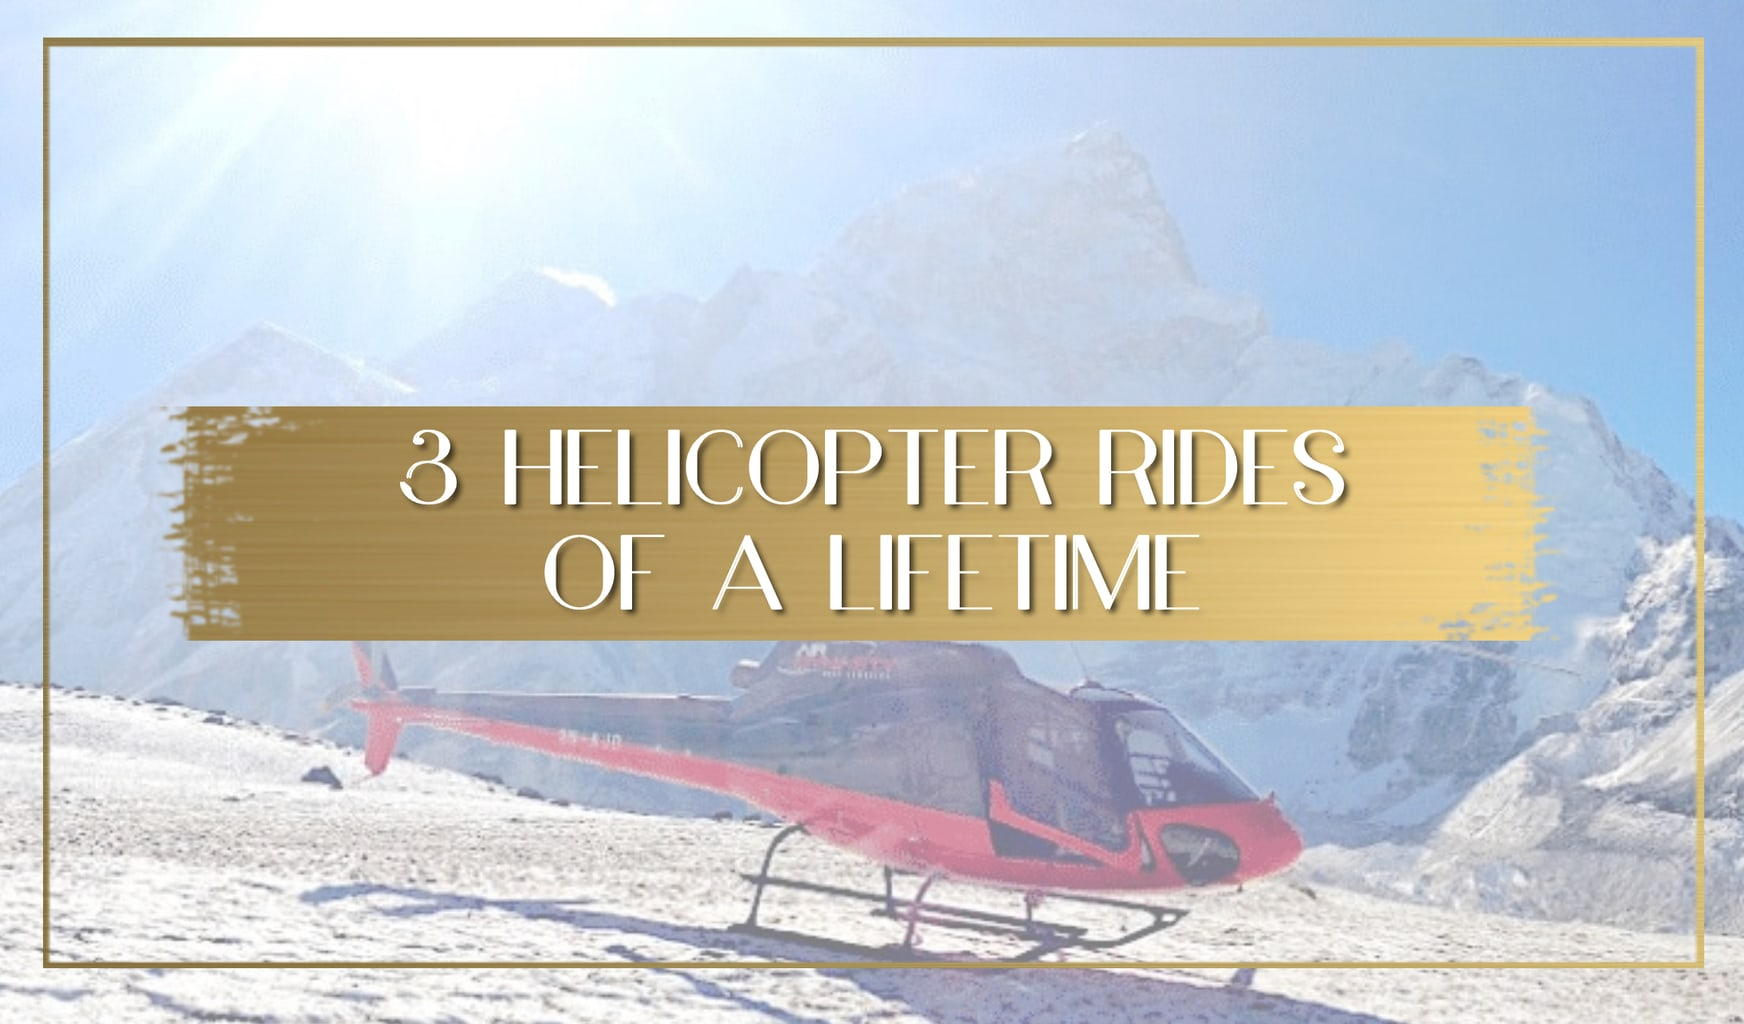 Helicopter rides of a lifetime main